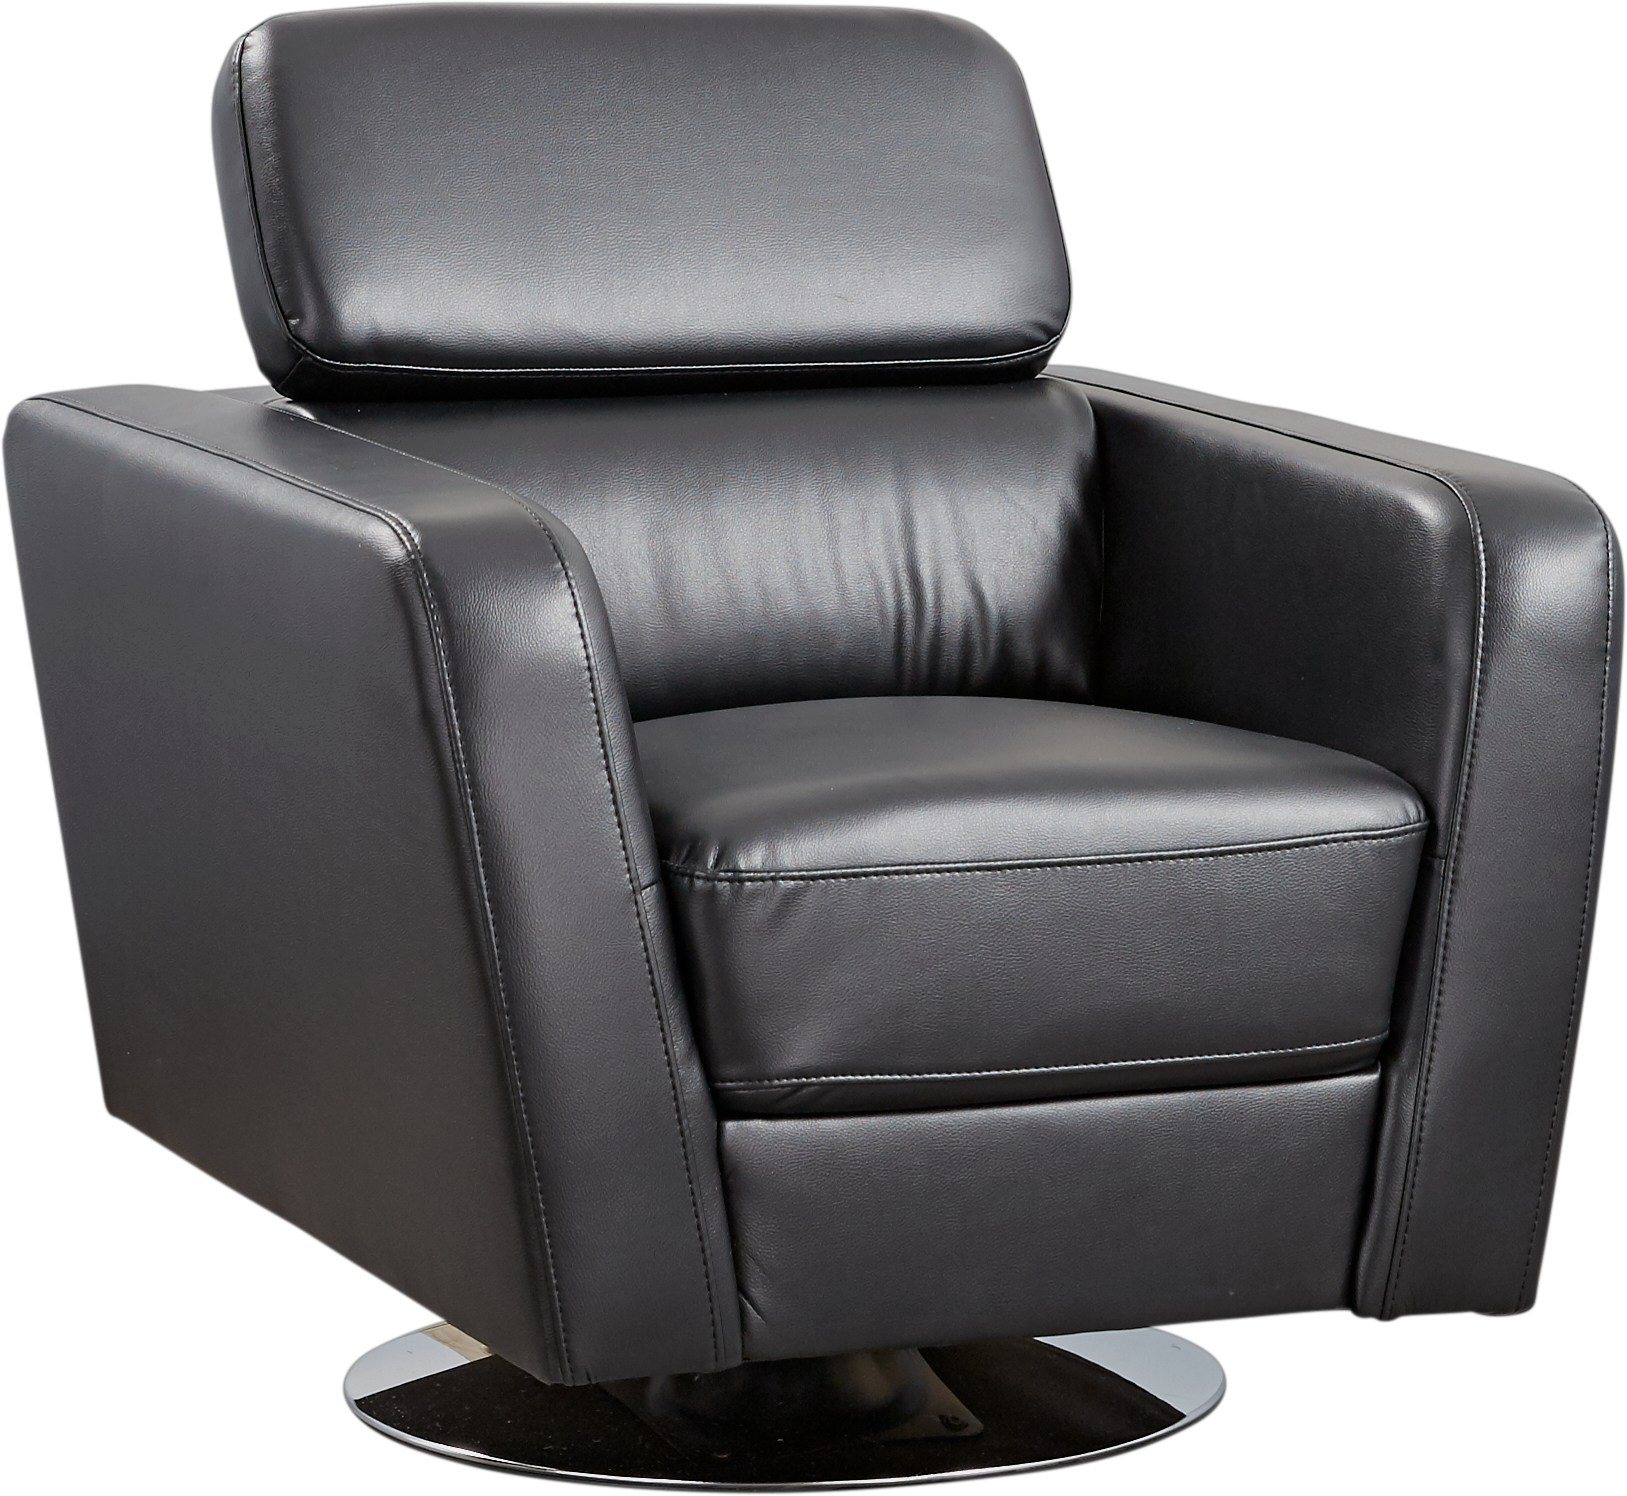 Dellinger Black Swivel Chair – Accent Chairs (Black) Regarding Leather Black Swivel Chairs (Image 6 of 20)